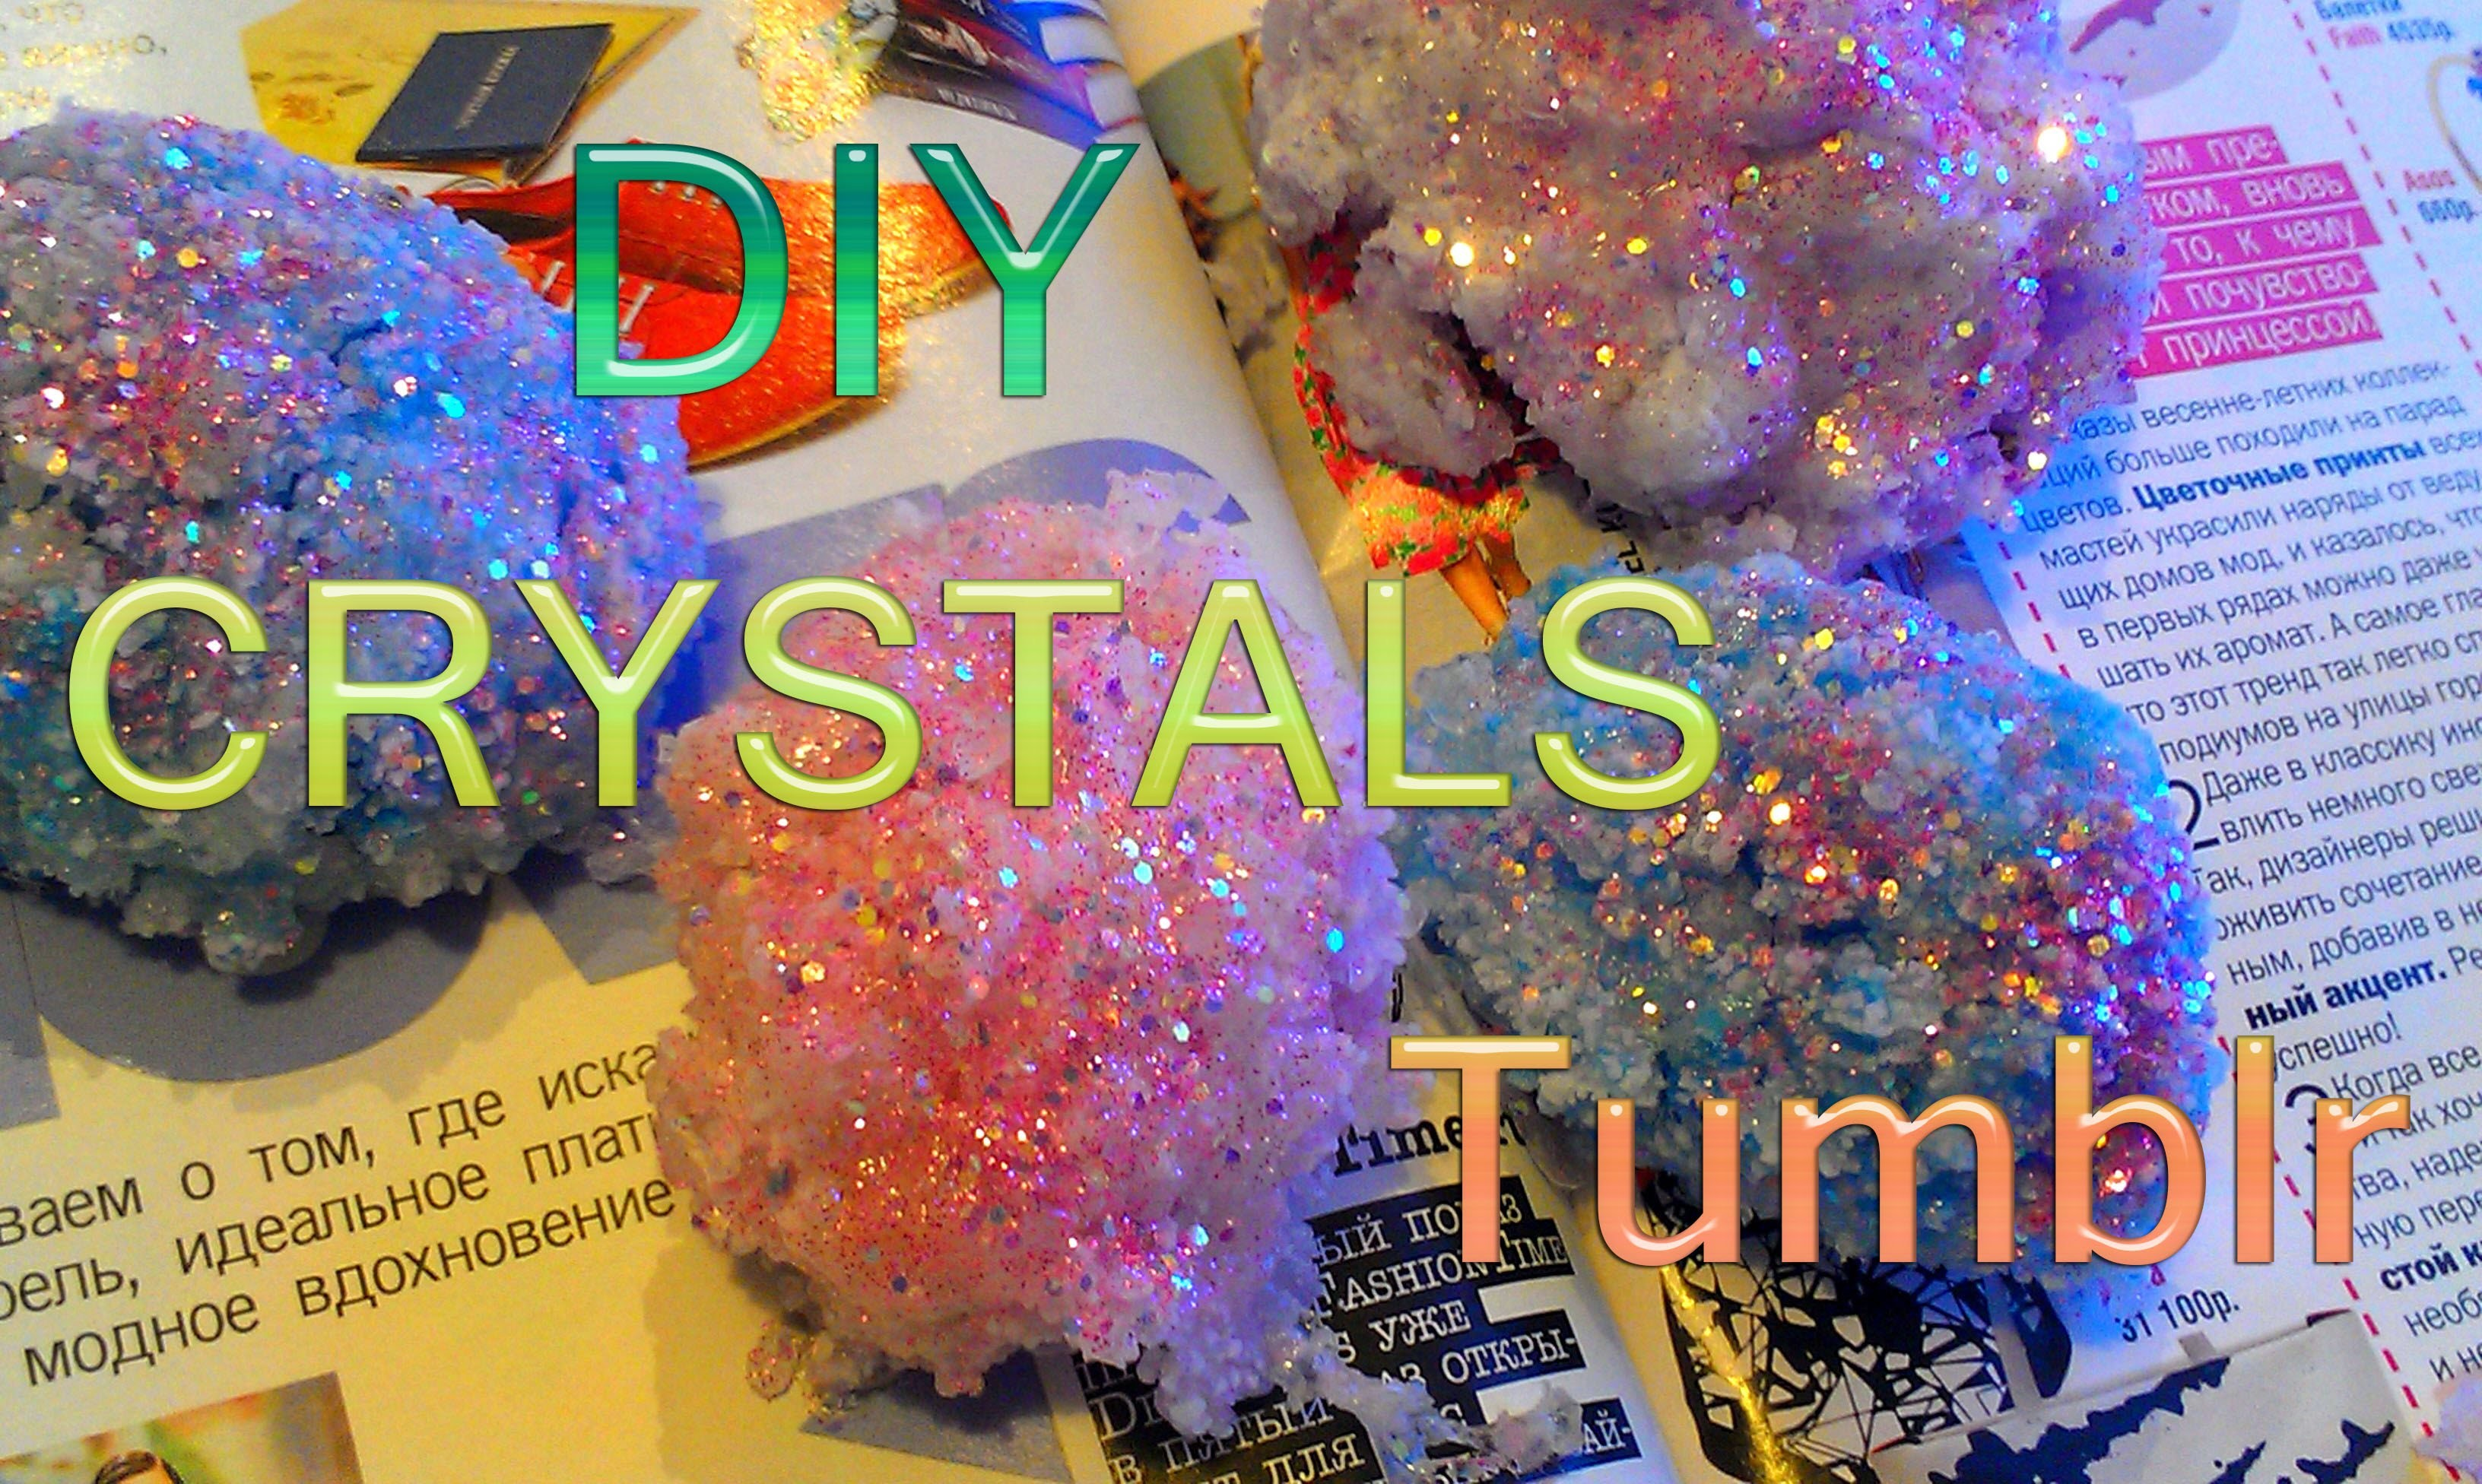 ♥Алёна ALENS ♥ DIY CRYSTALS ! ♥ Tumblr Room Decorations ♥ diy кристалл в стиле Tumblr.Декор ♥